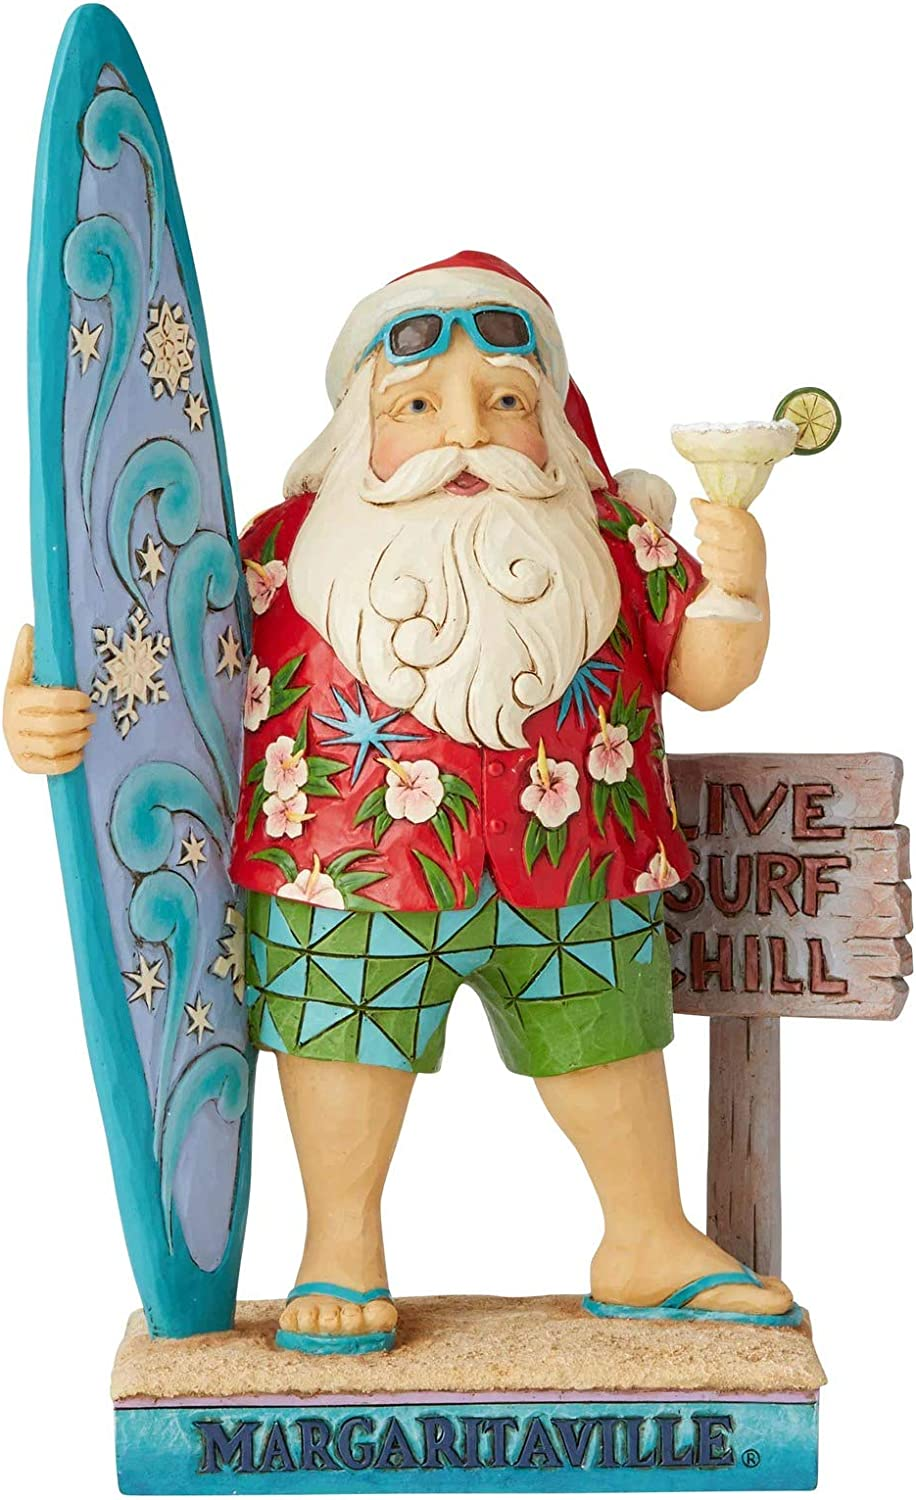 Enesco Margaritaville by Jim Shore Santa with Surf Board Figurine, 10.5""